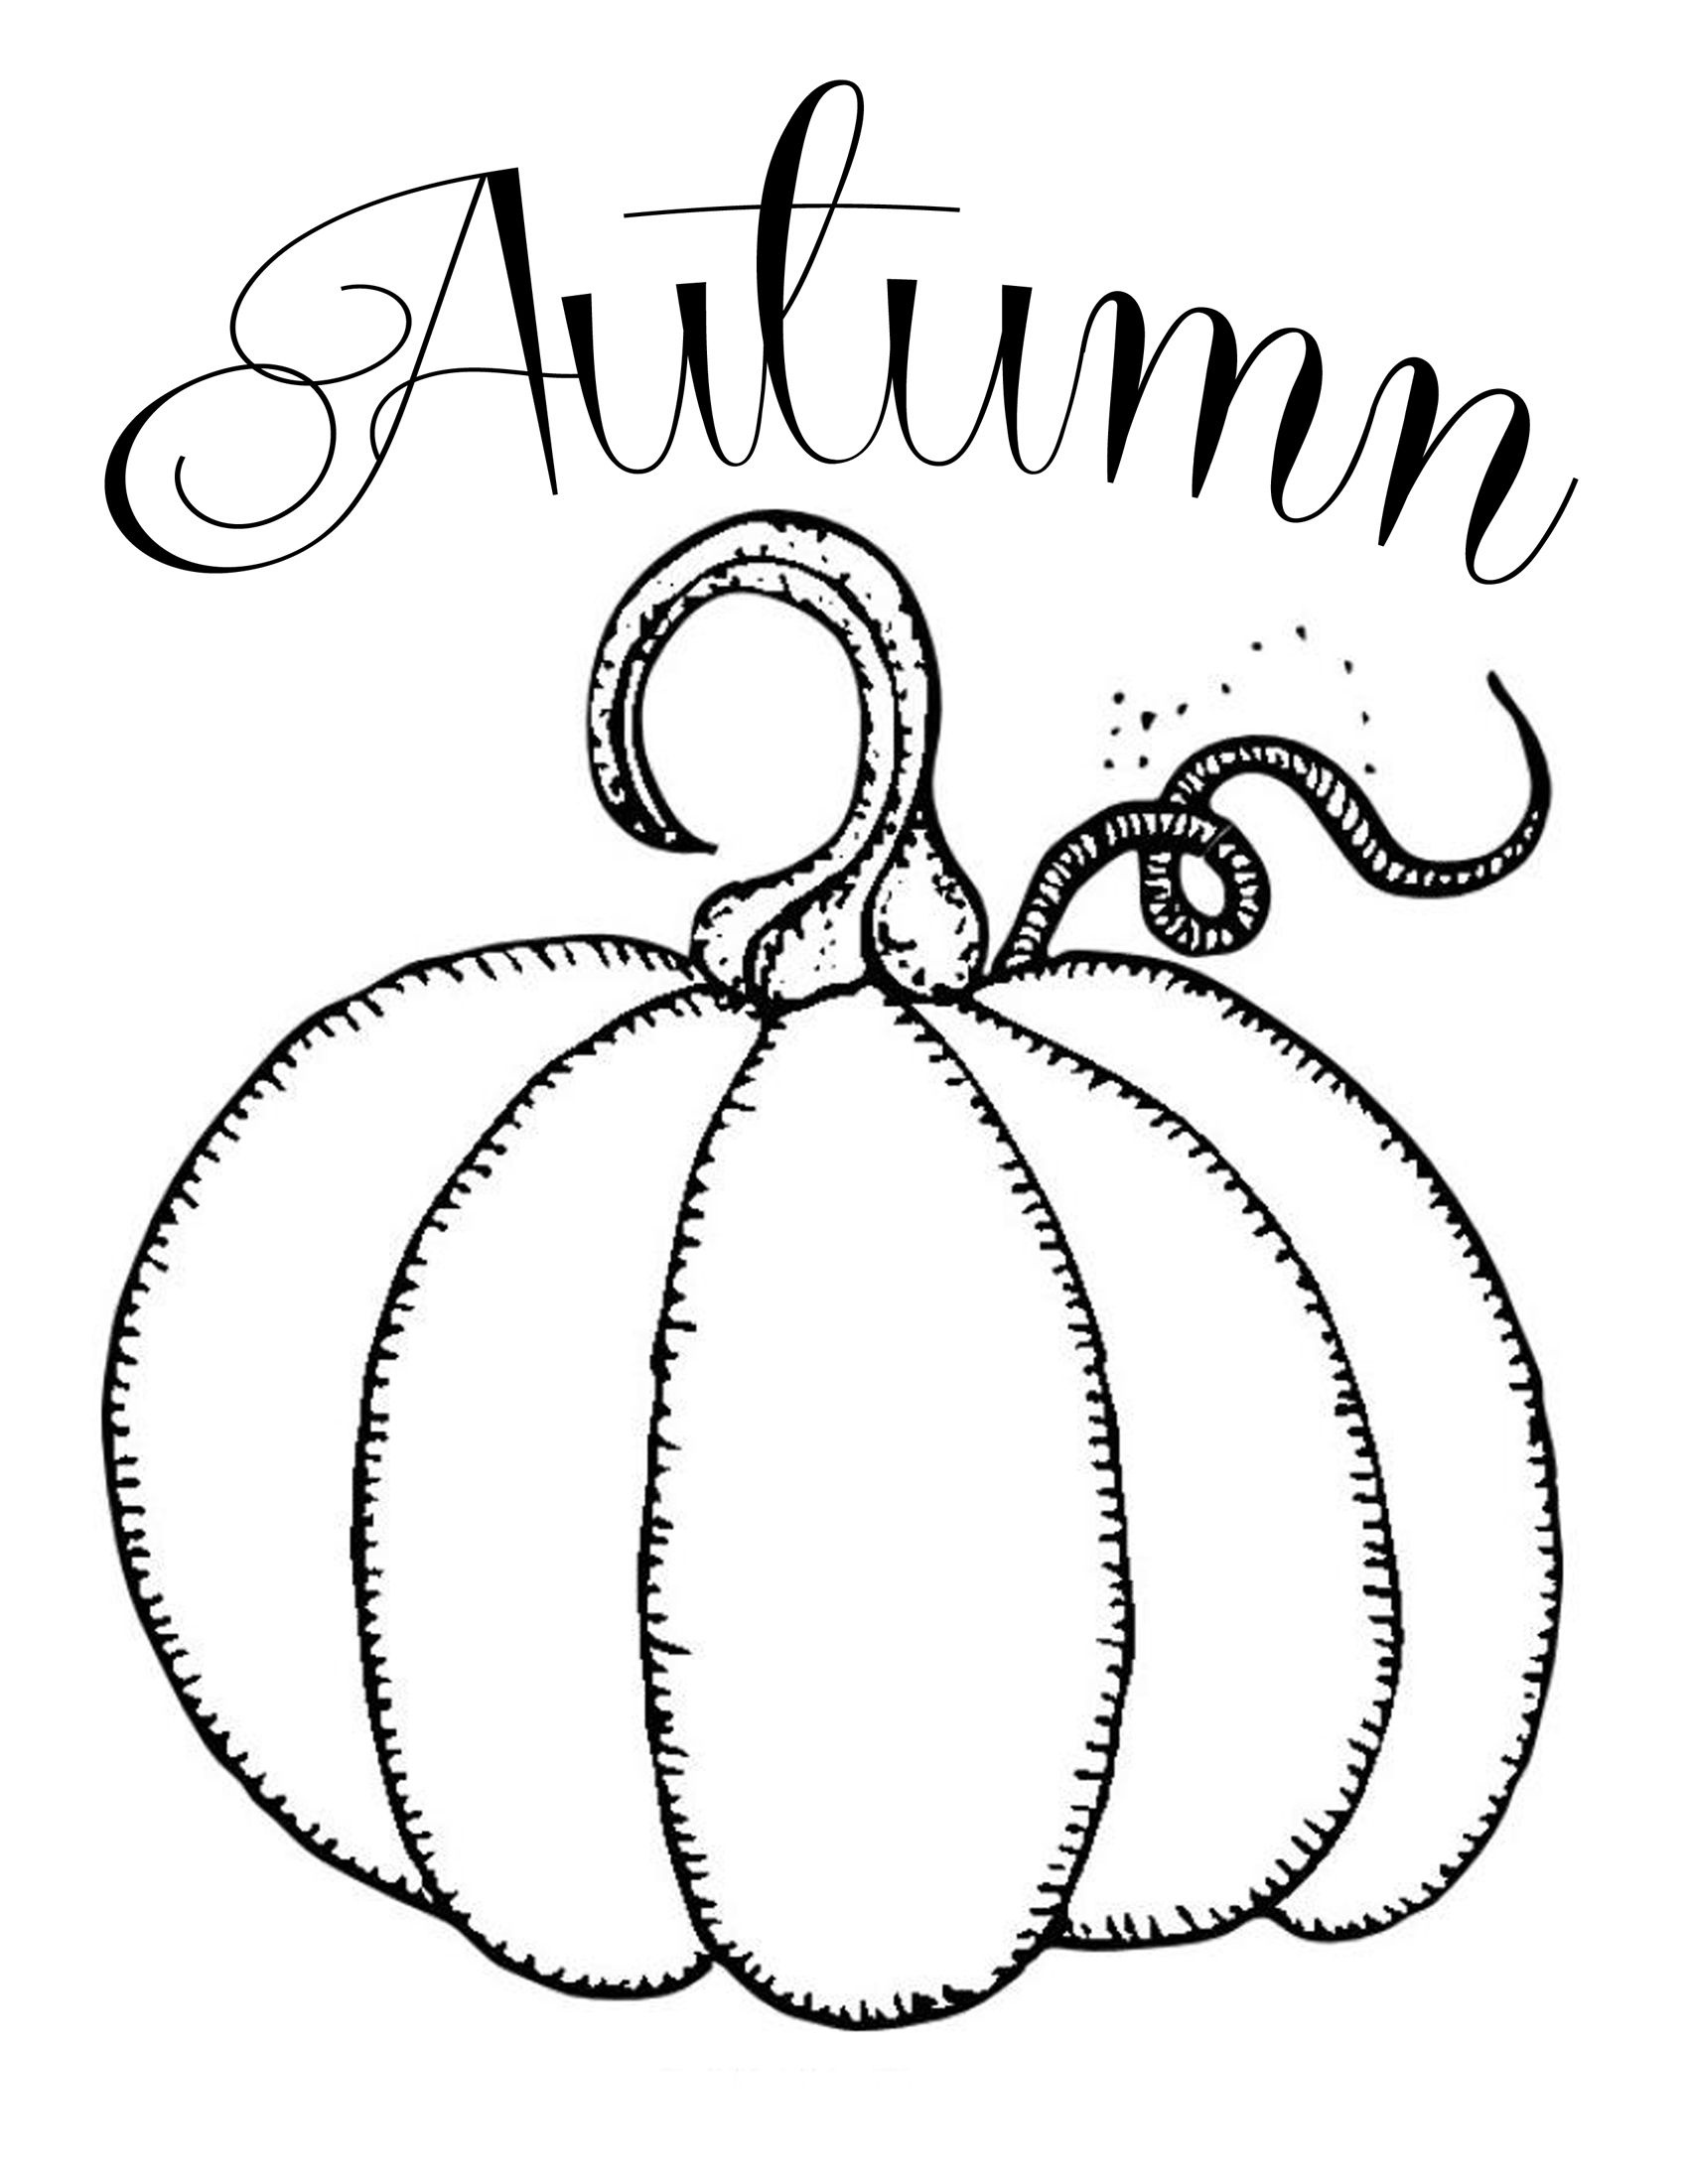 Free Printables ~ Chalkboard Autumn Pumpkin | Fonts And Printables - Free Printable Pumpkin Books